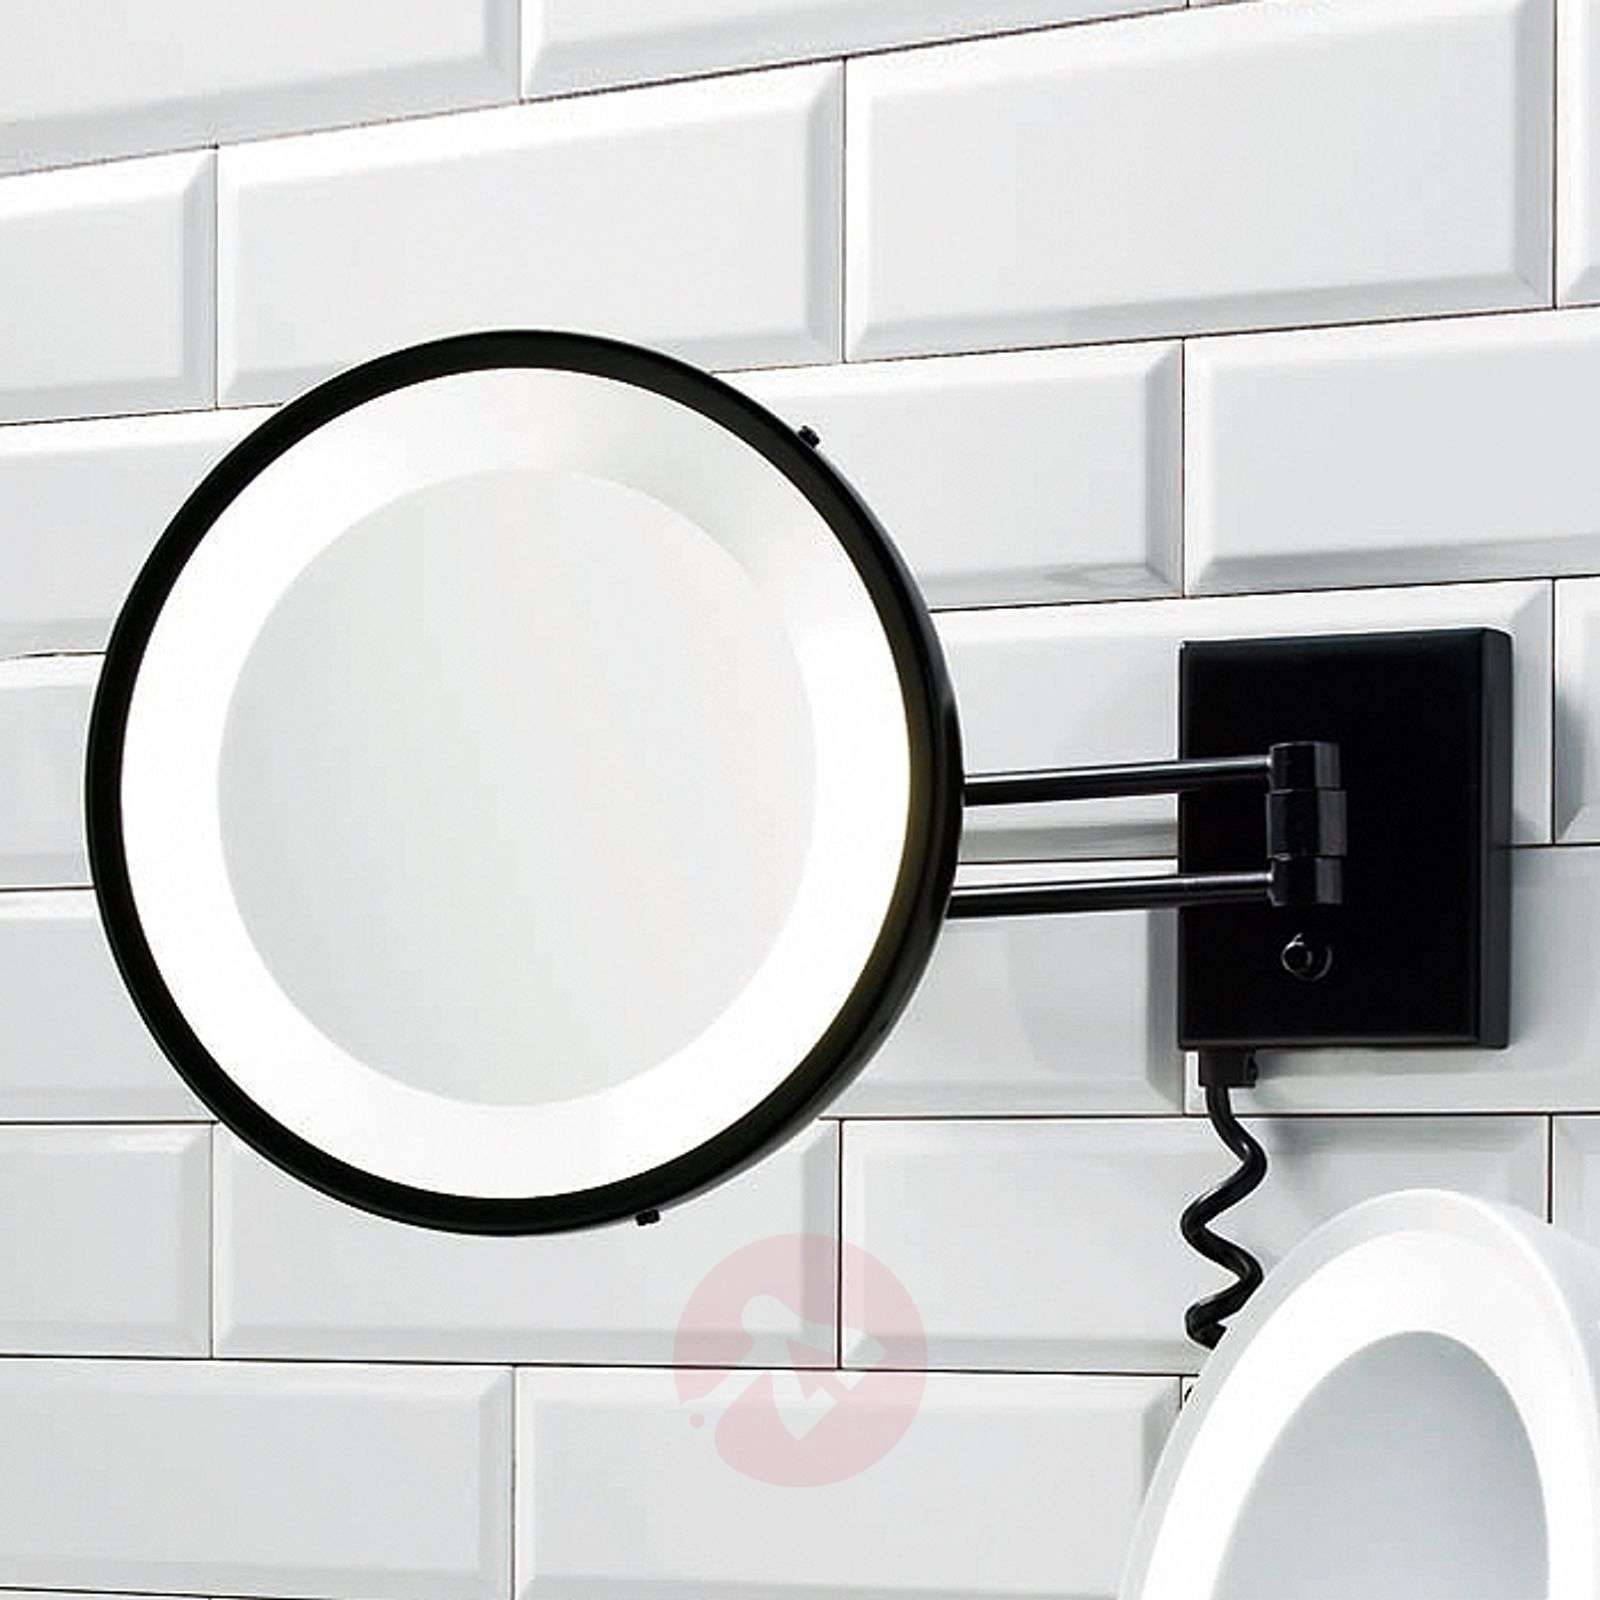 Decor Walther BS 25 make-up mirror black 5x-2504350-01